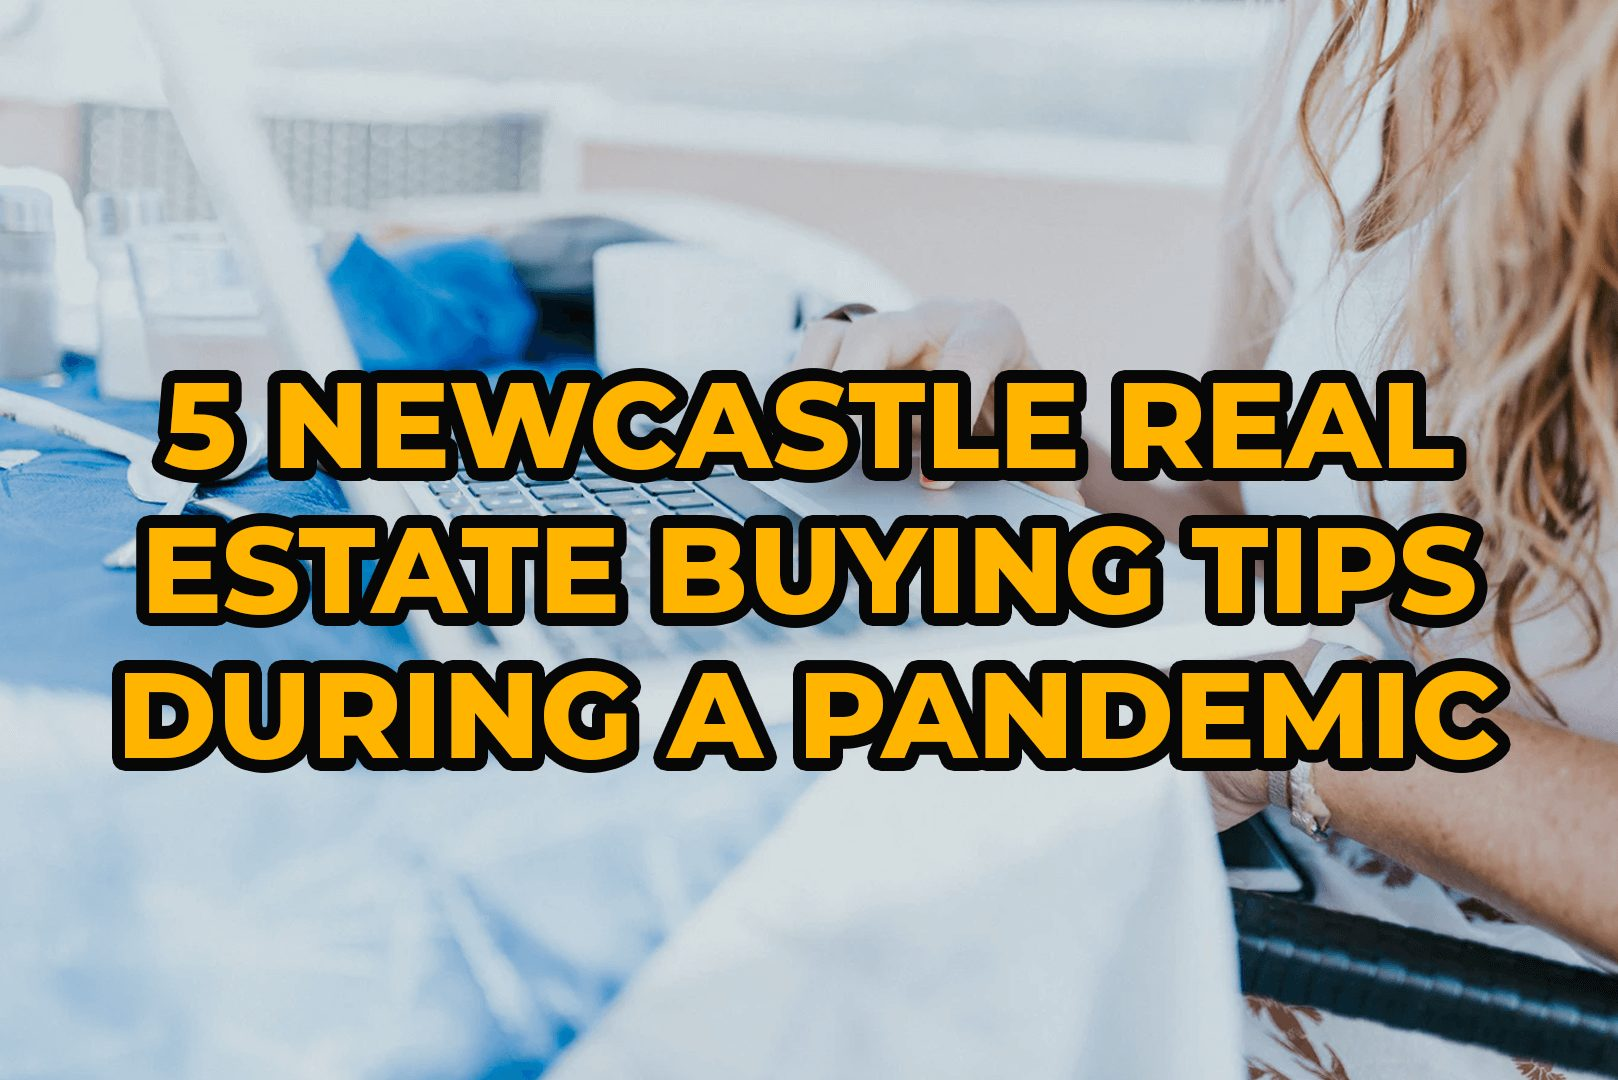 5 Newcastle Real Estate Buying Tips During A Pandemic